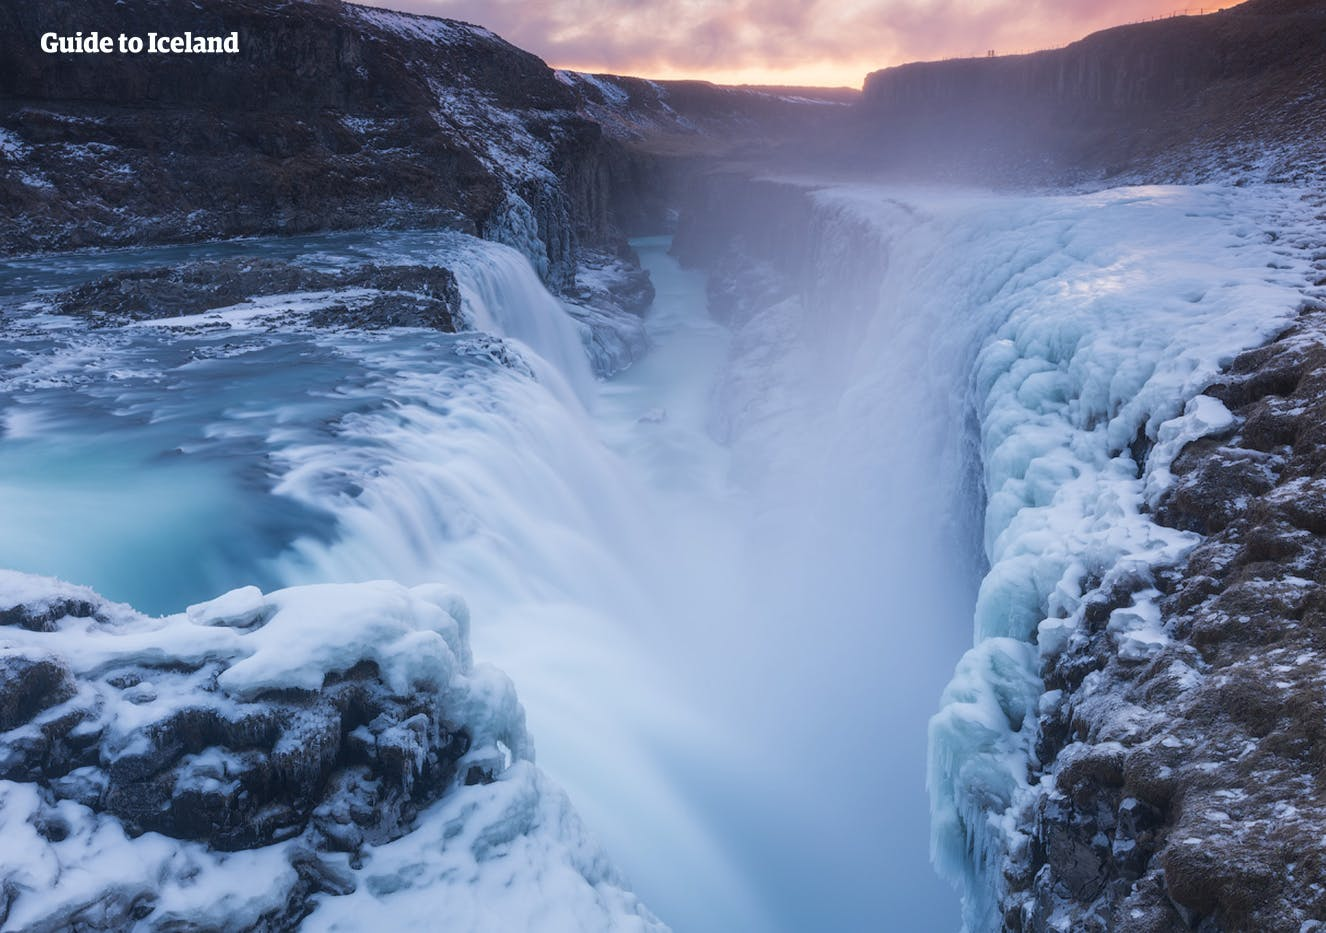 8-Day Winter Package   South Coast, Eastfjords & Lake Myvatn